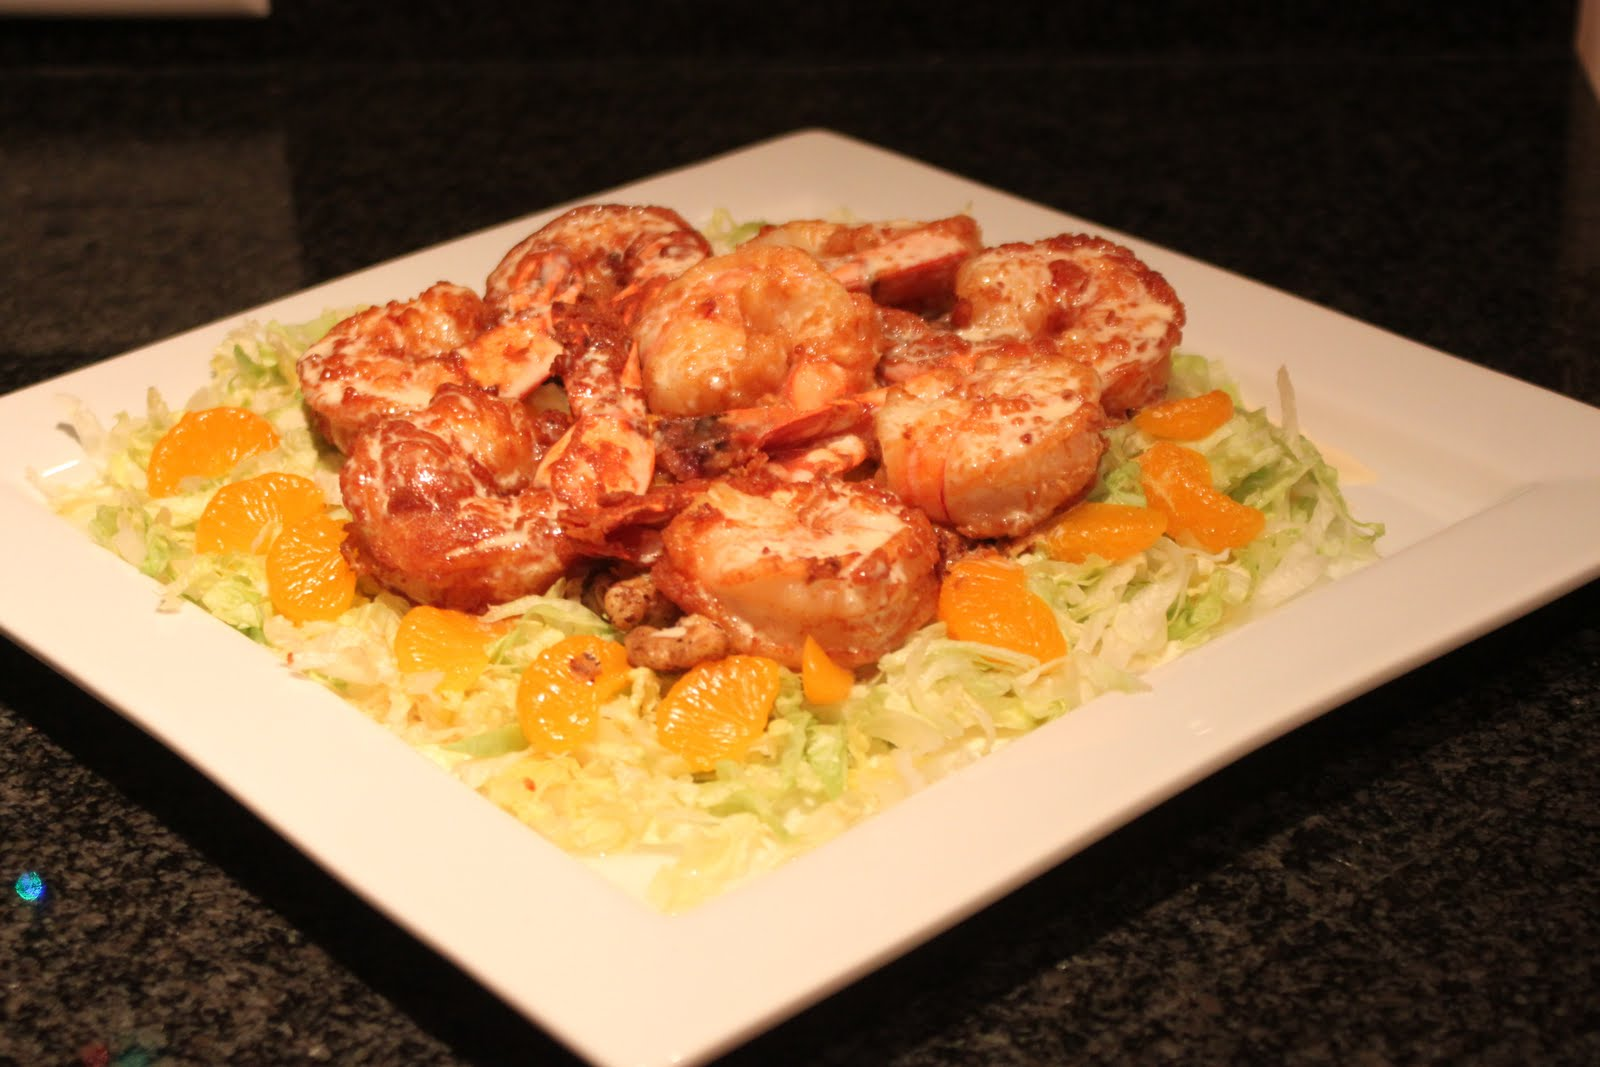 Fine Dining at Home: December 23 - Grand Marnier Shrimp